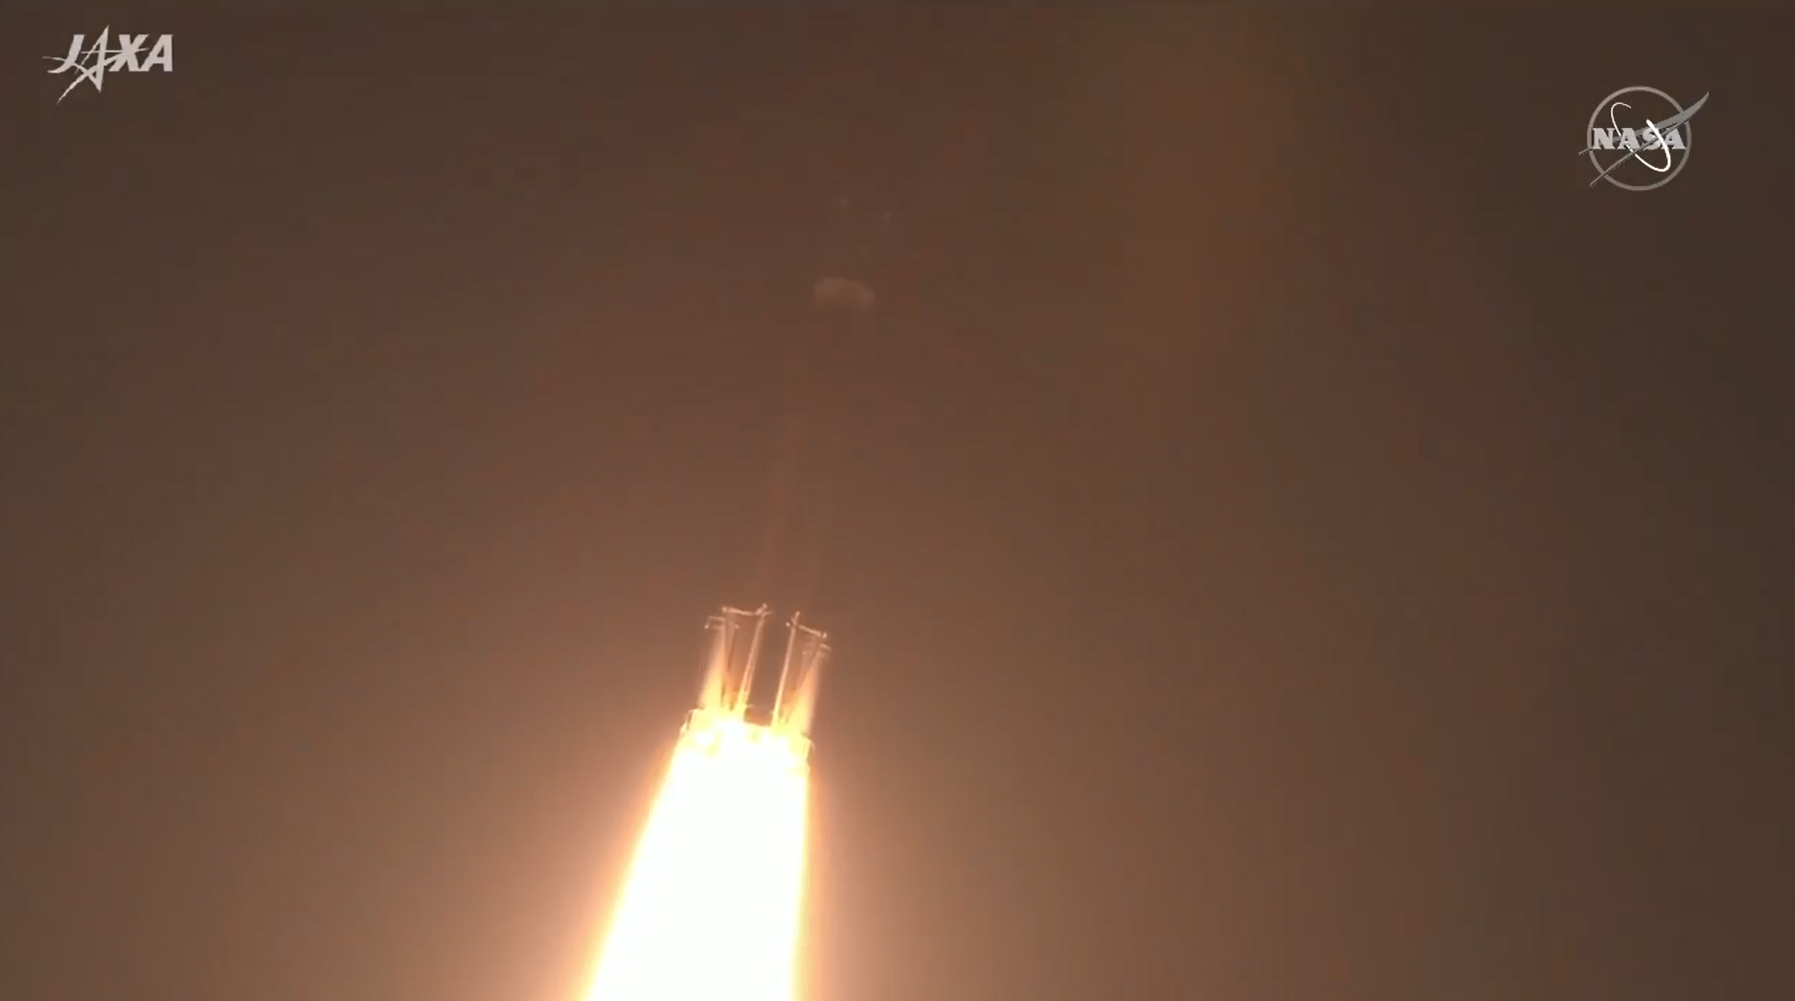 Japan's HTV-9 cargo craft moments after liftoff